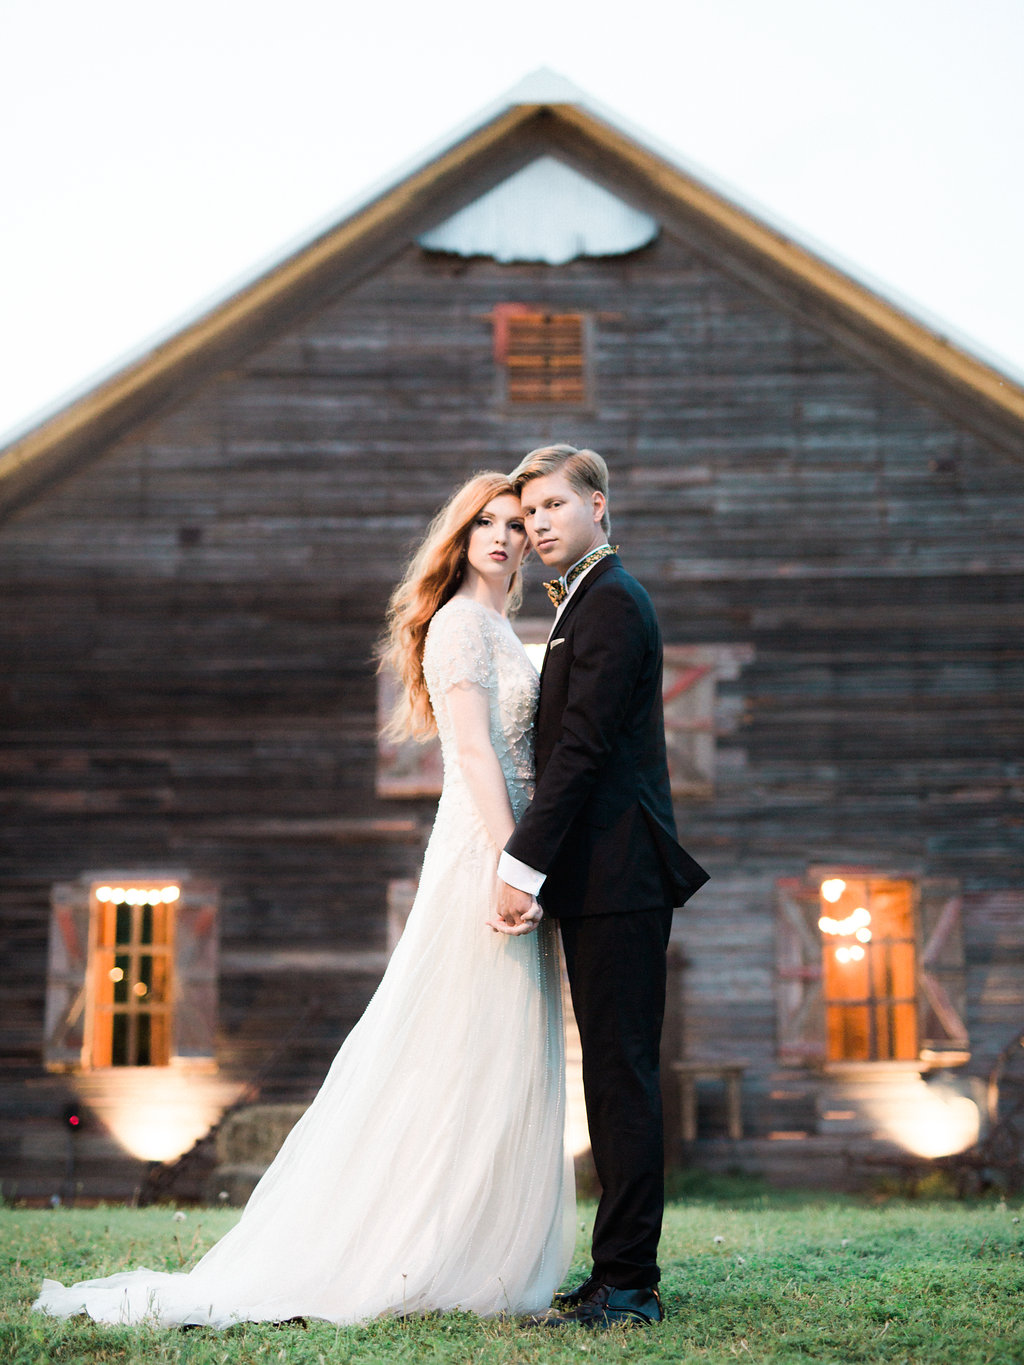 (We can't help but mention how perfect our barn looks in the staging of this shoot!)